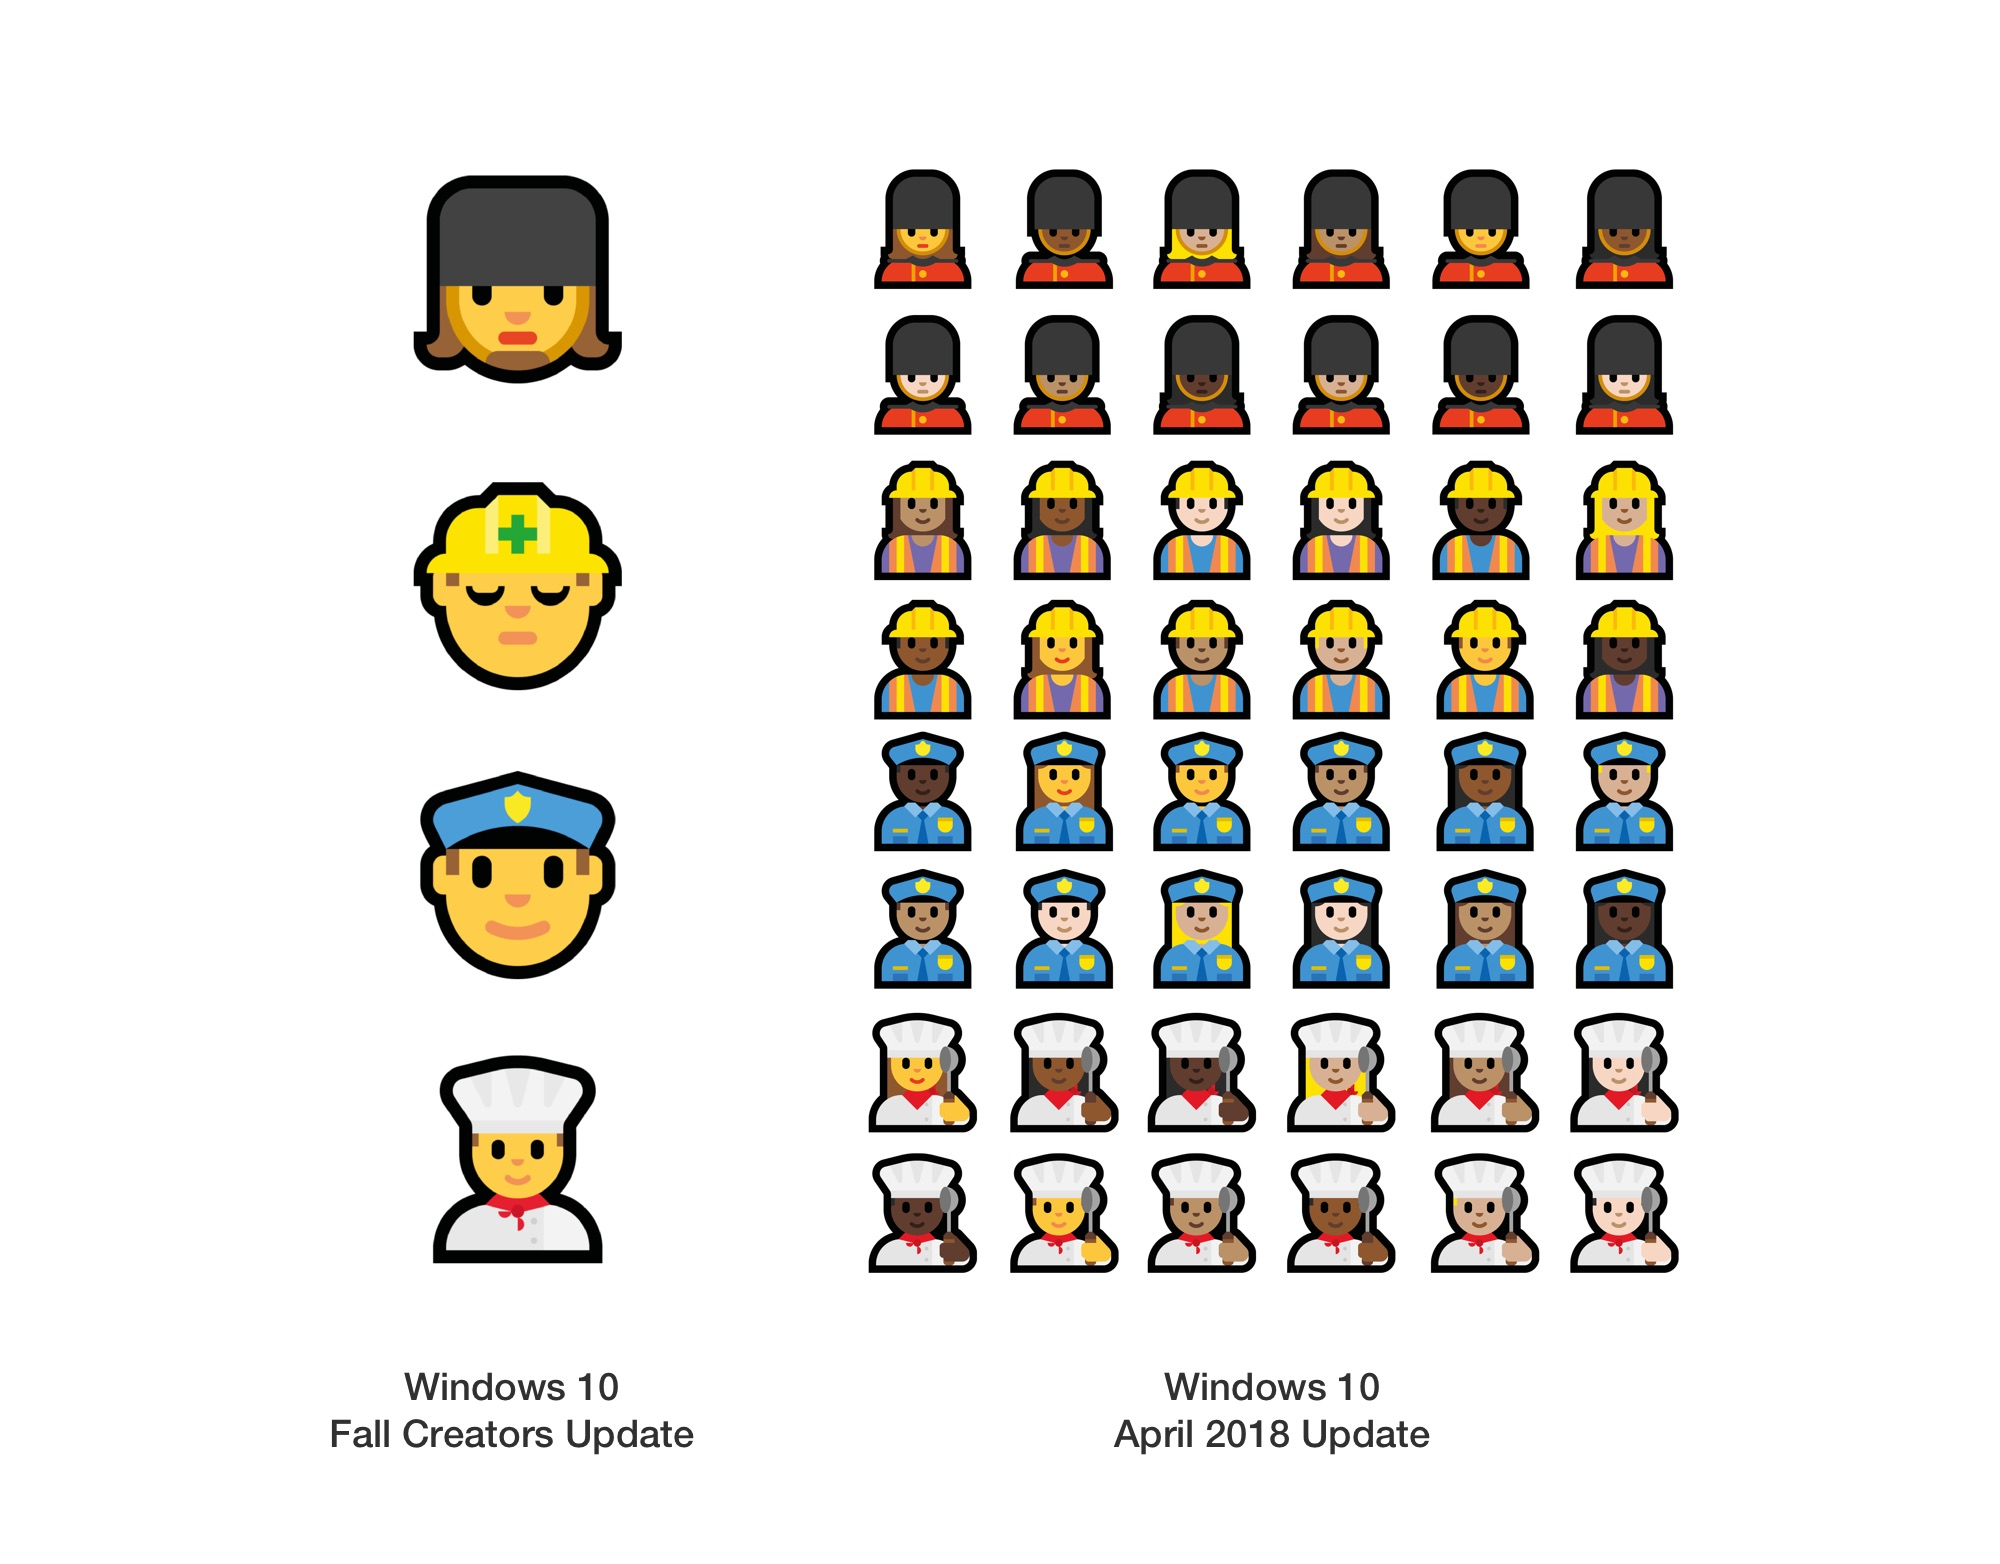 professions-windows-10-april-2018-update-emoji-emojipedia